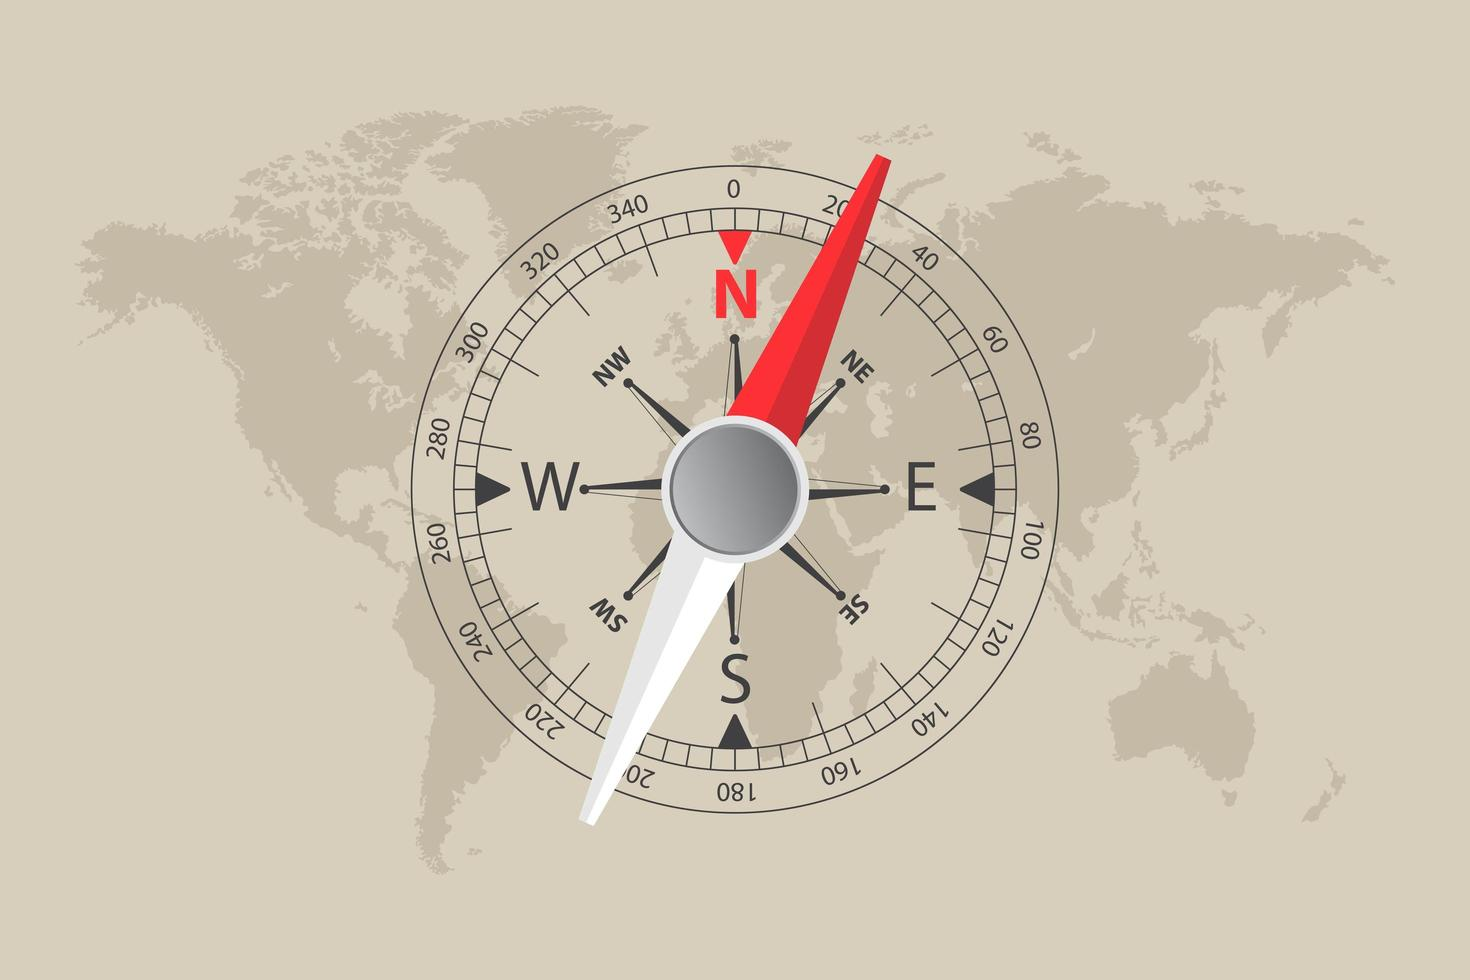 World map and magnetic compass  vector